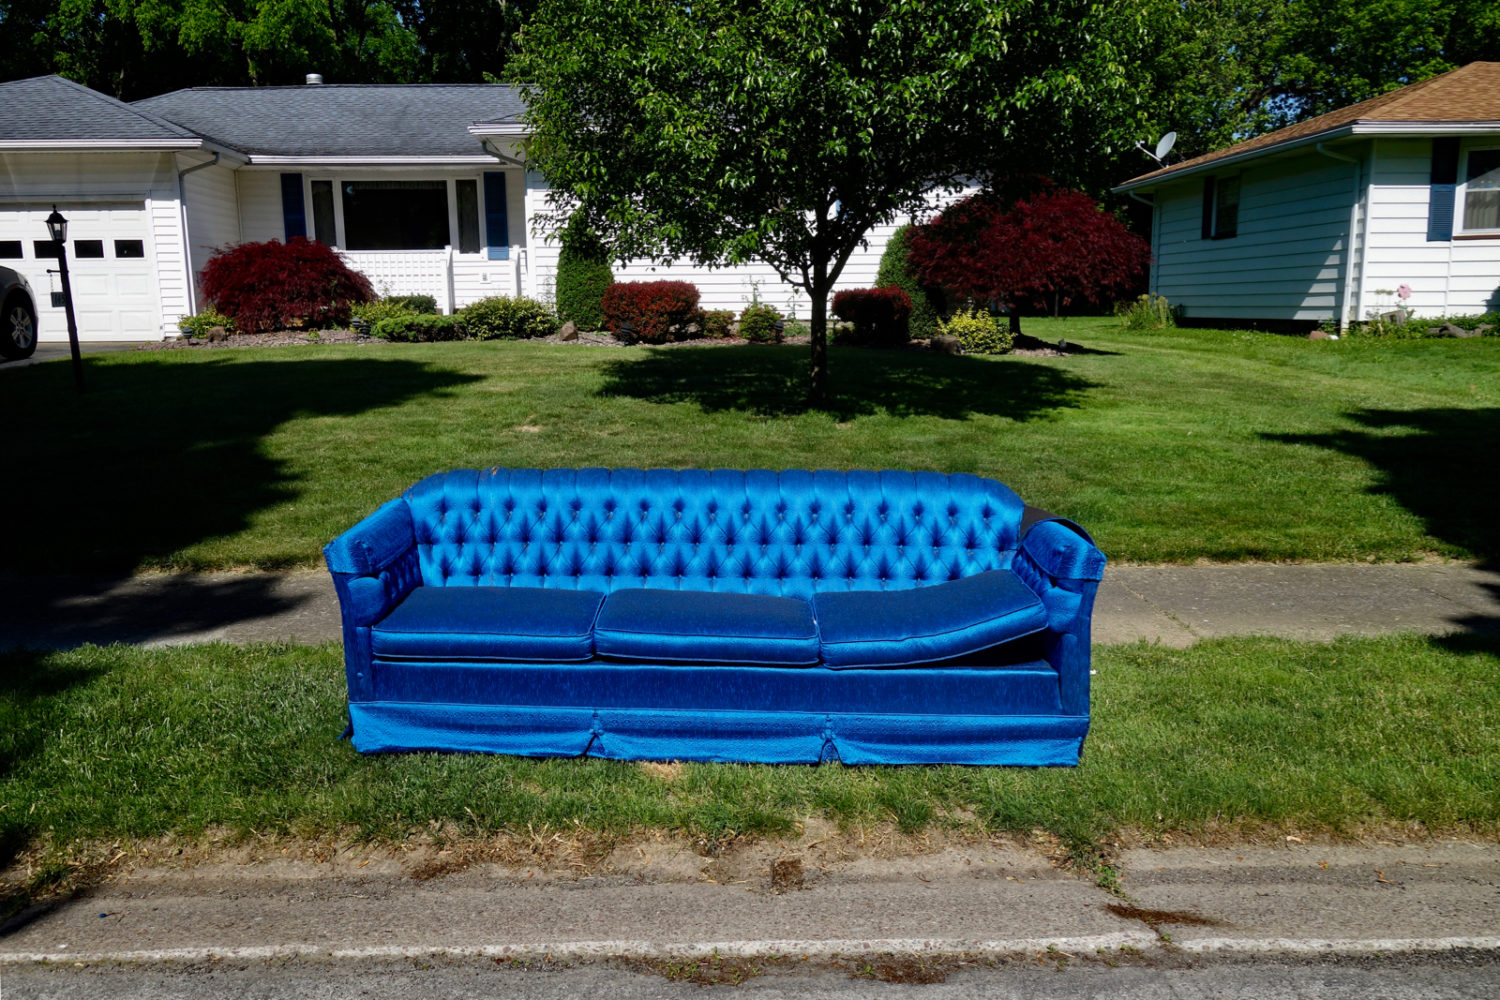 Bright blue couch at curb on side street off Wahl Road, Rochester NY.